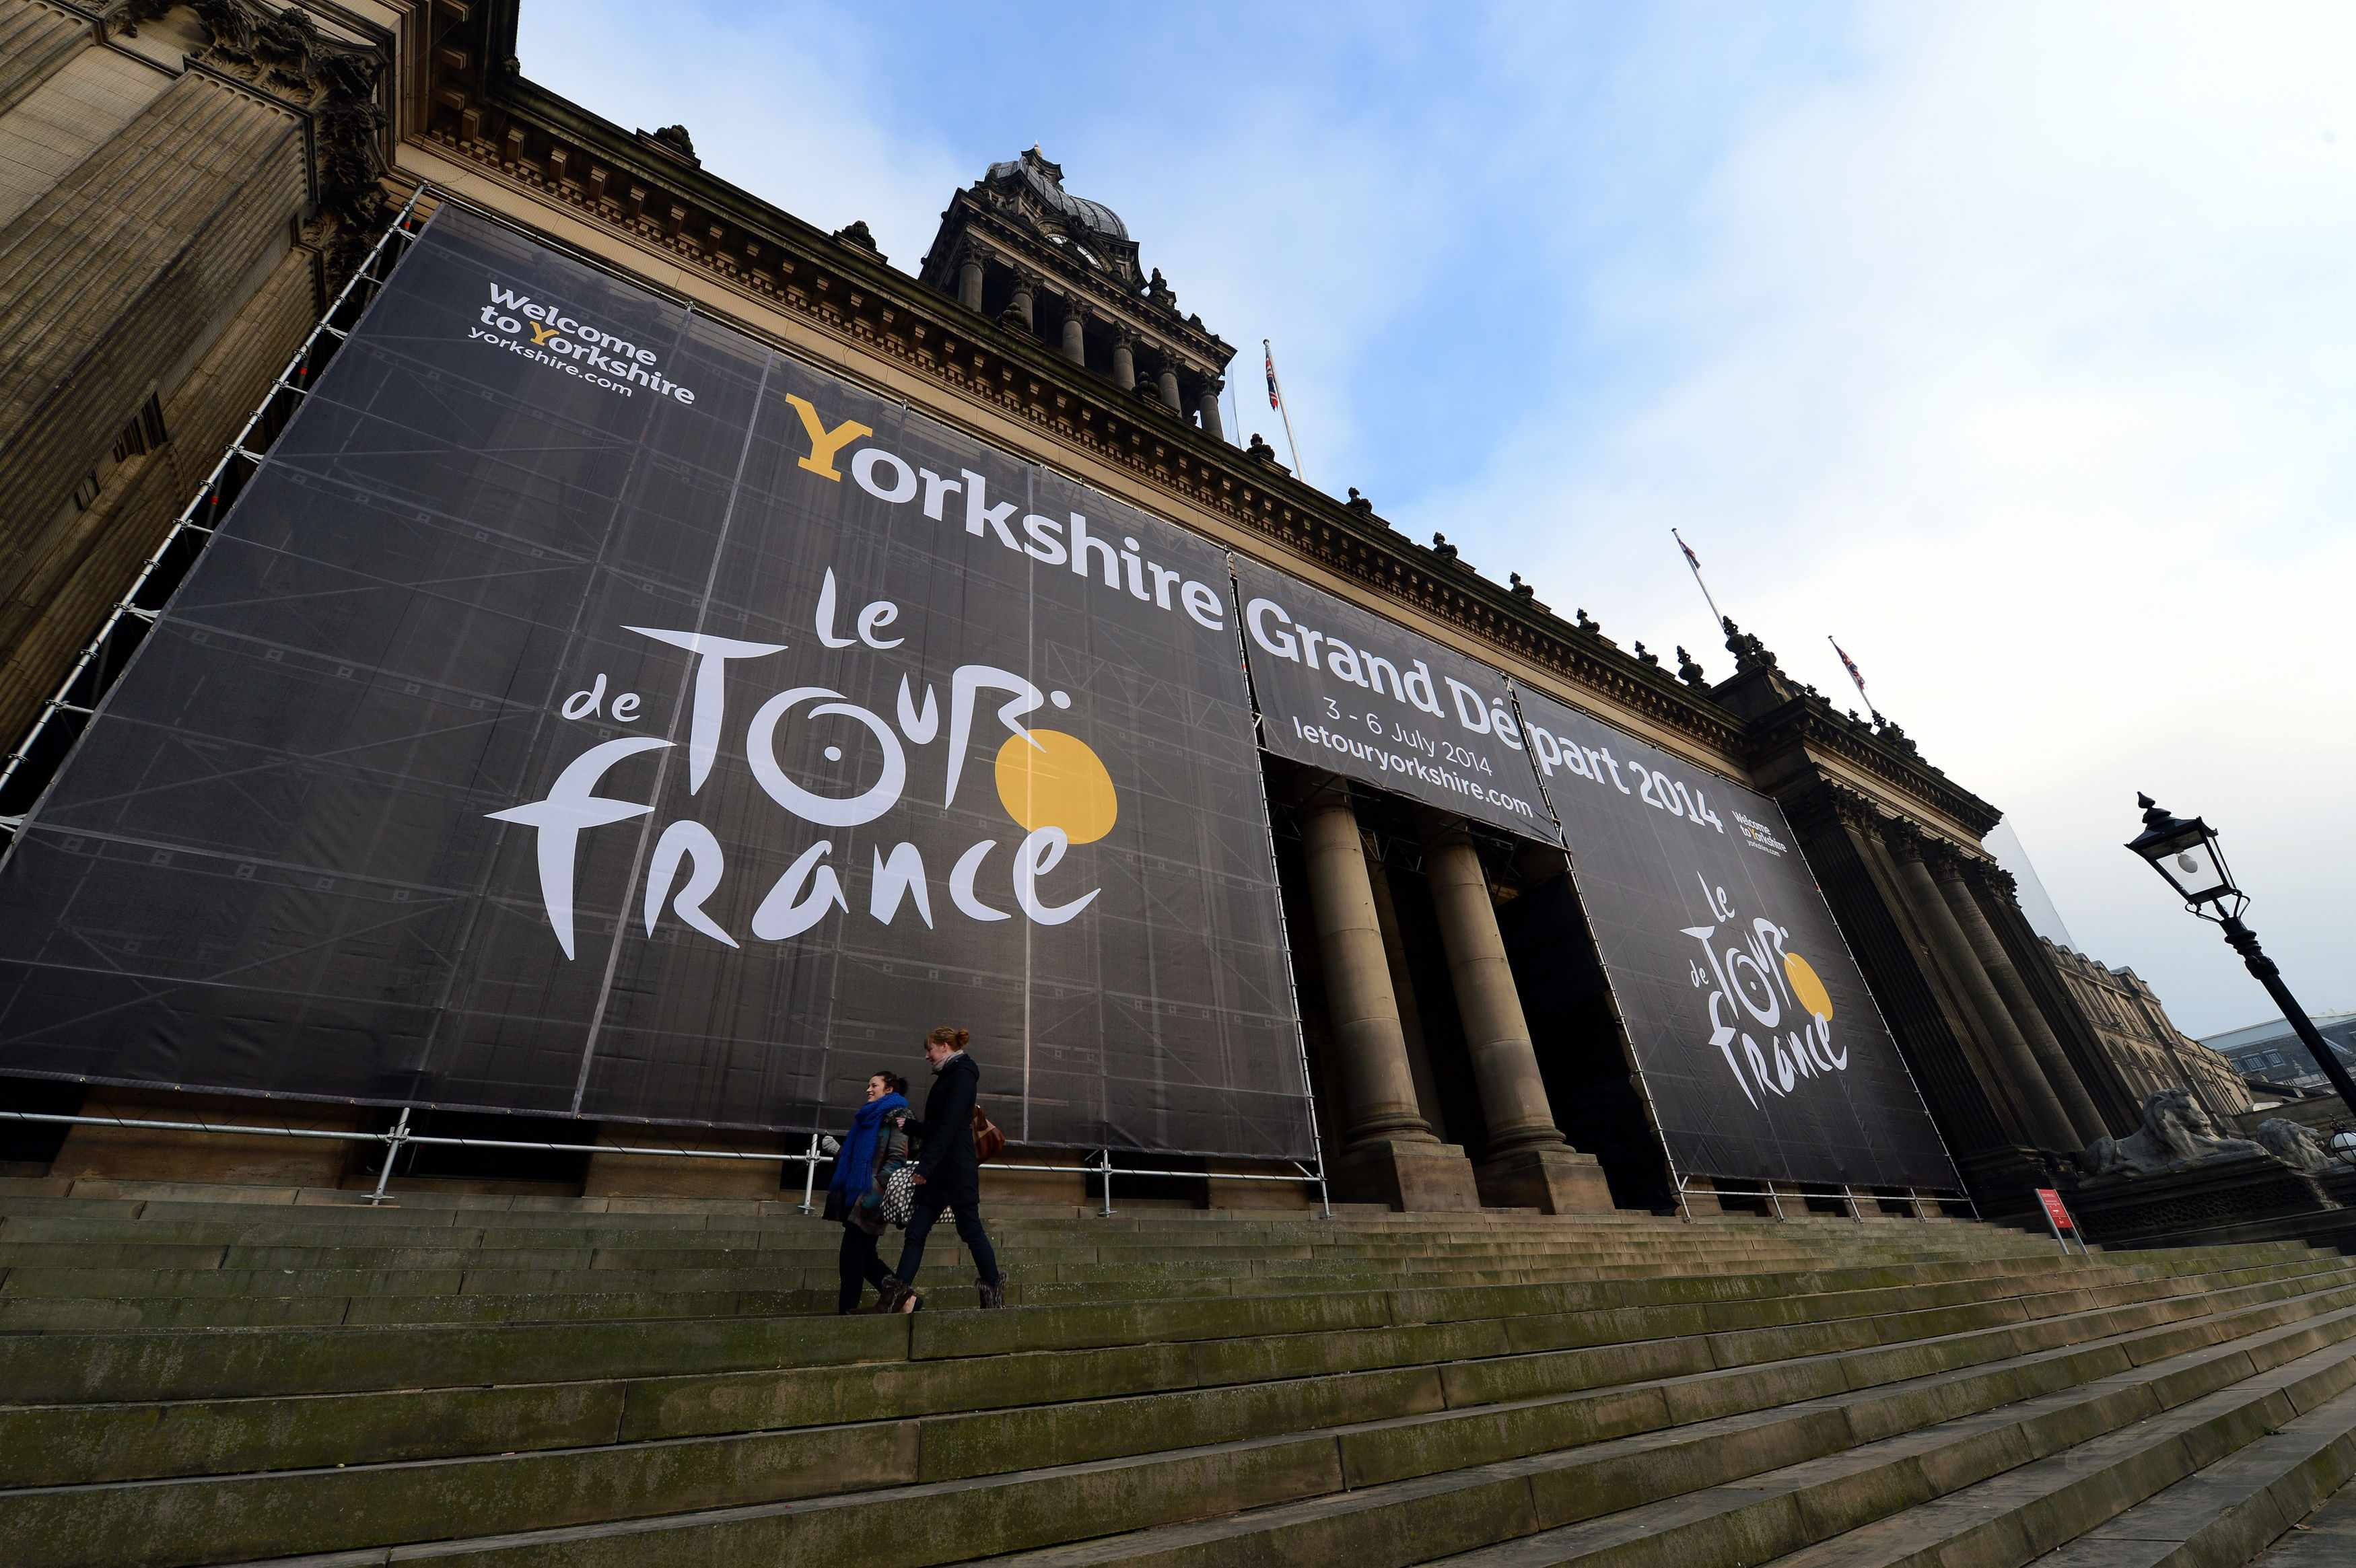 Preparation at Leeds Town Hall for the 2014 Tour route presentation